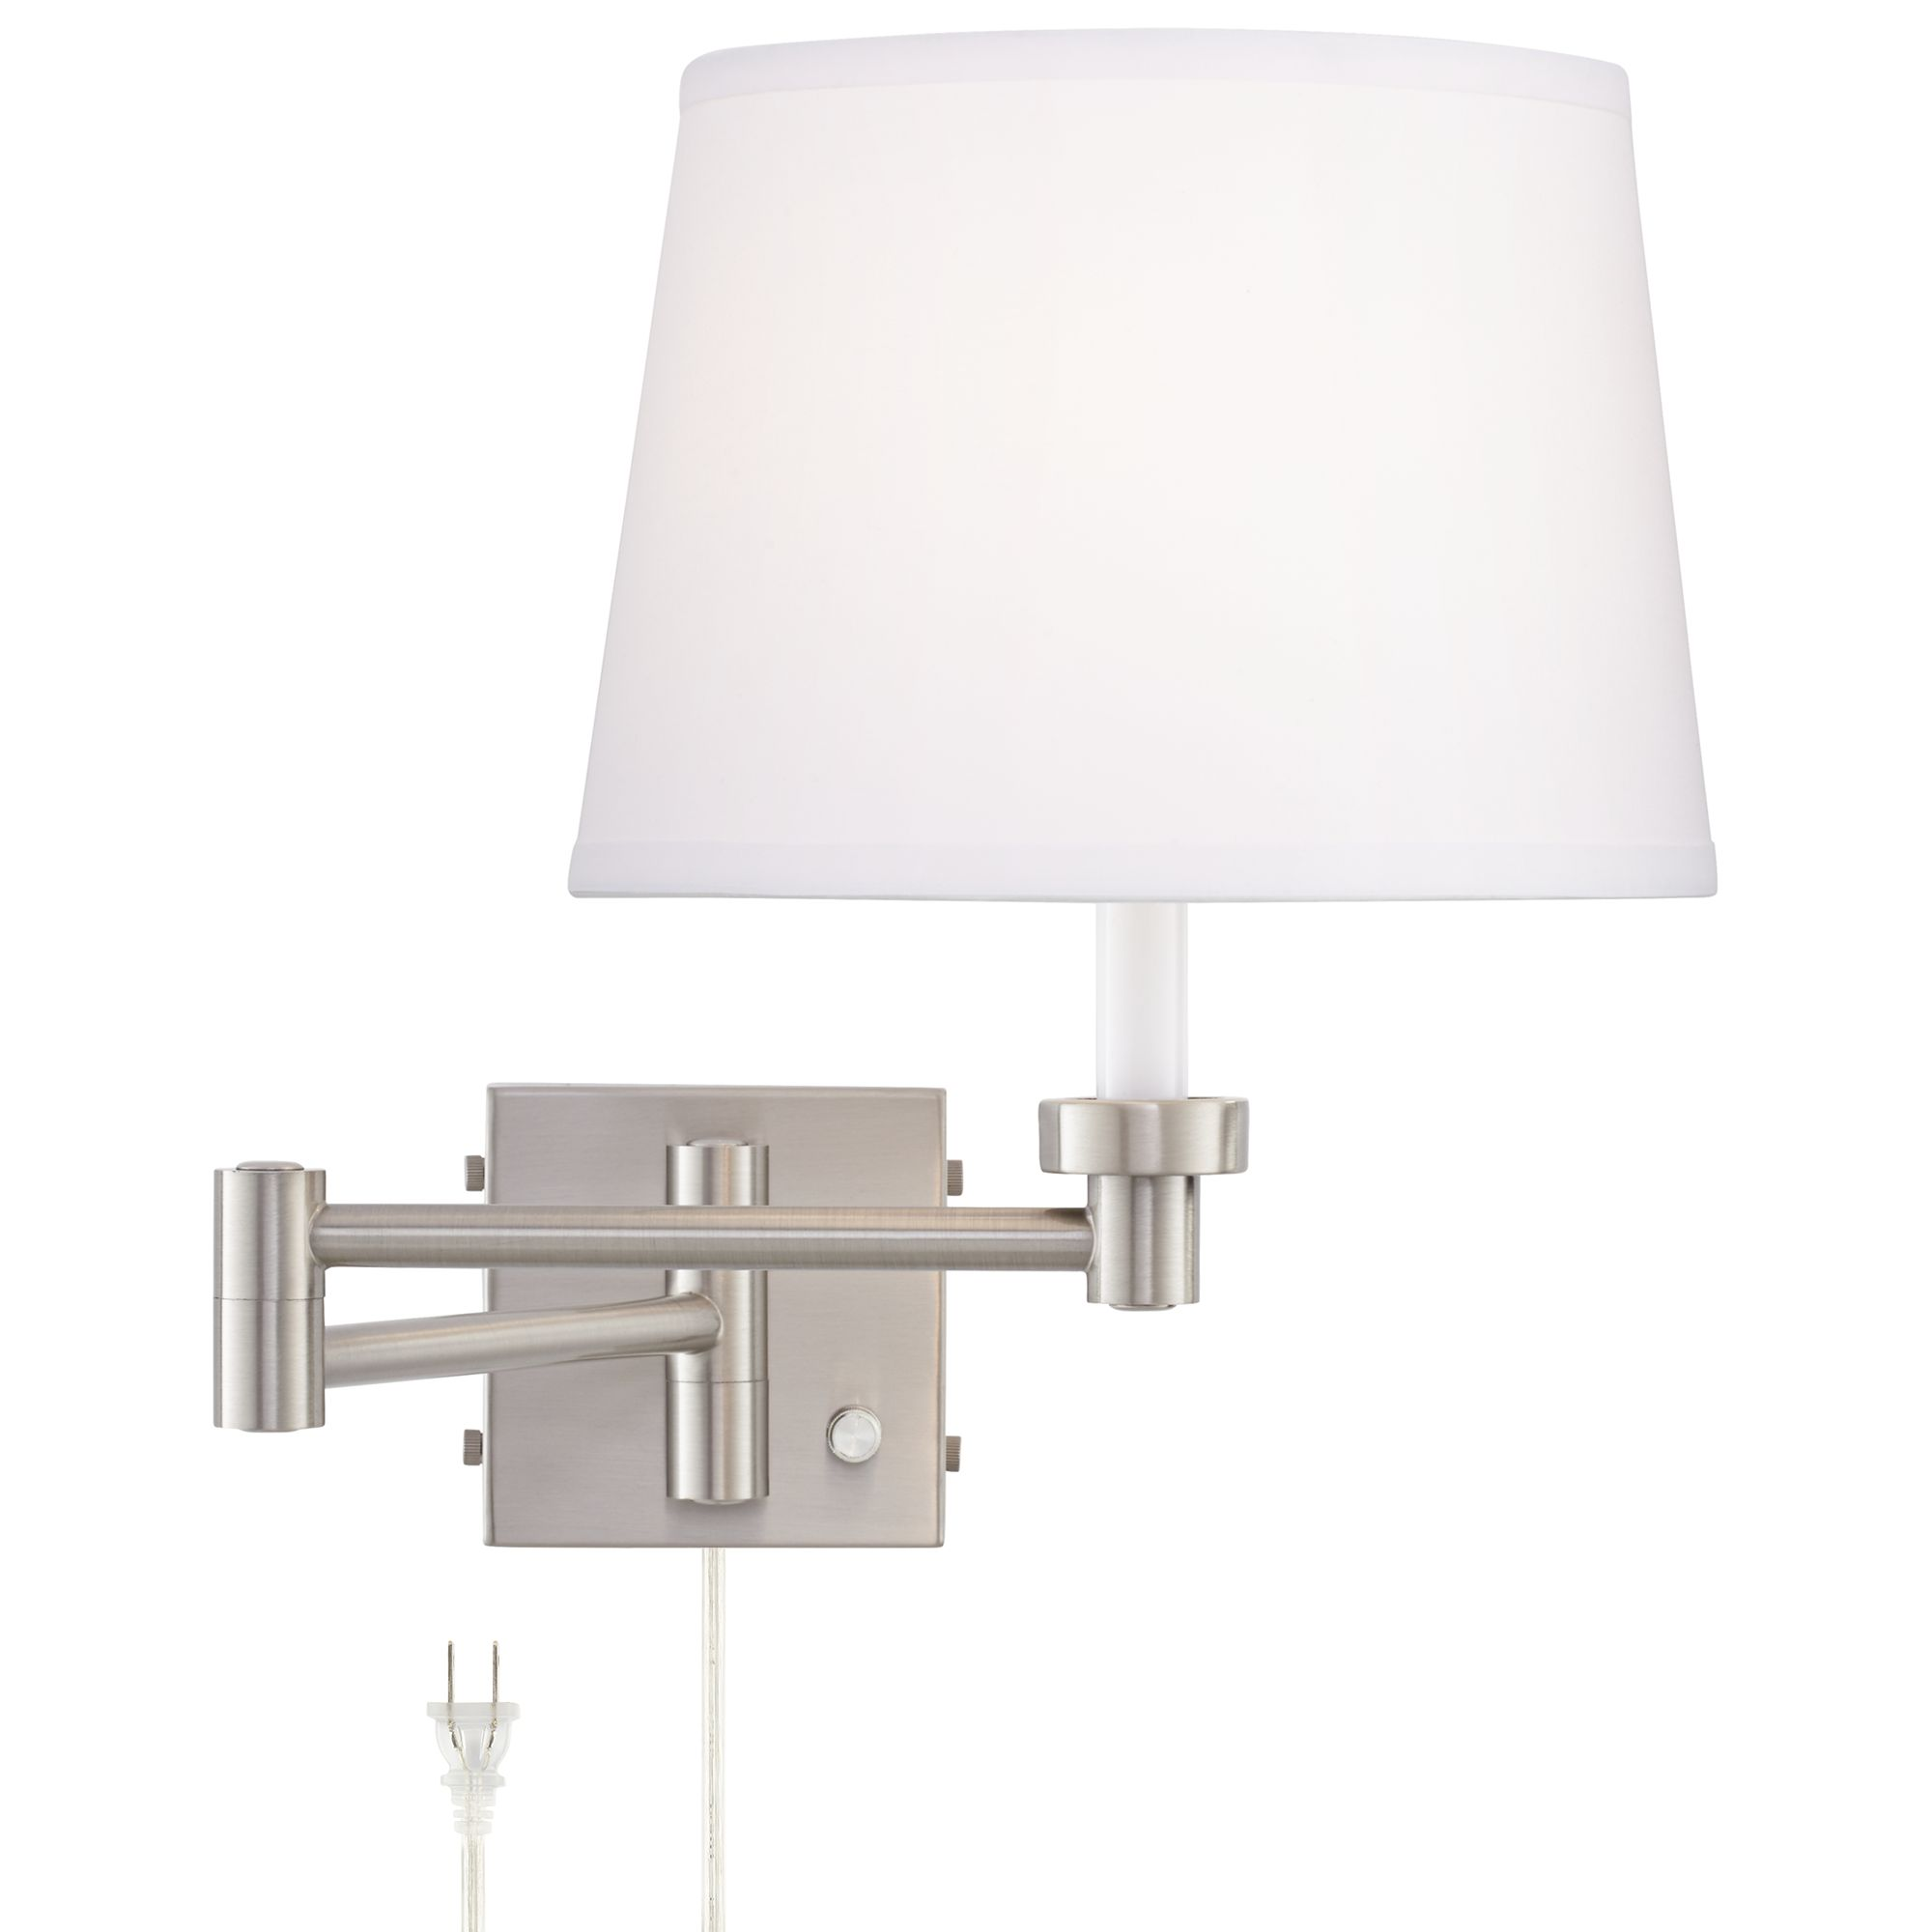 vero brushed nickel plugin swing arm wall lamp with usb